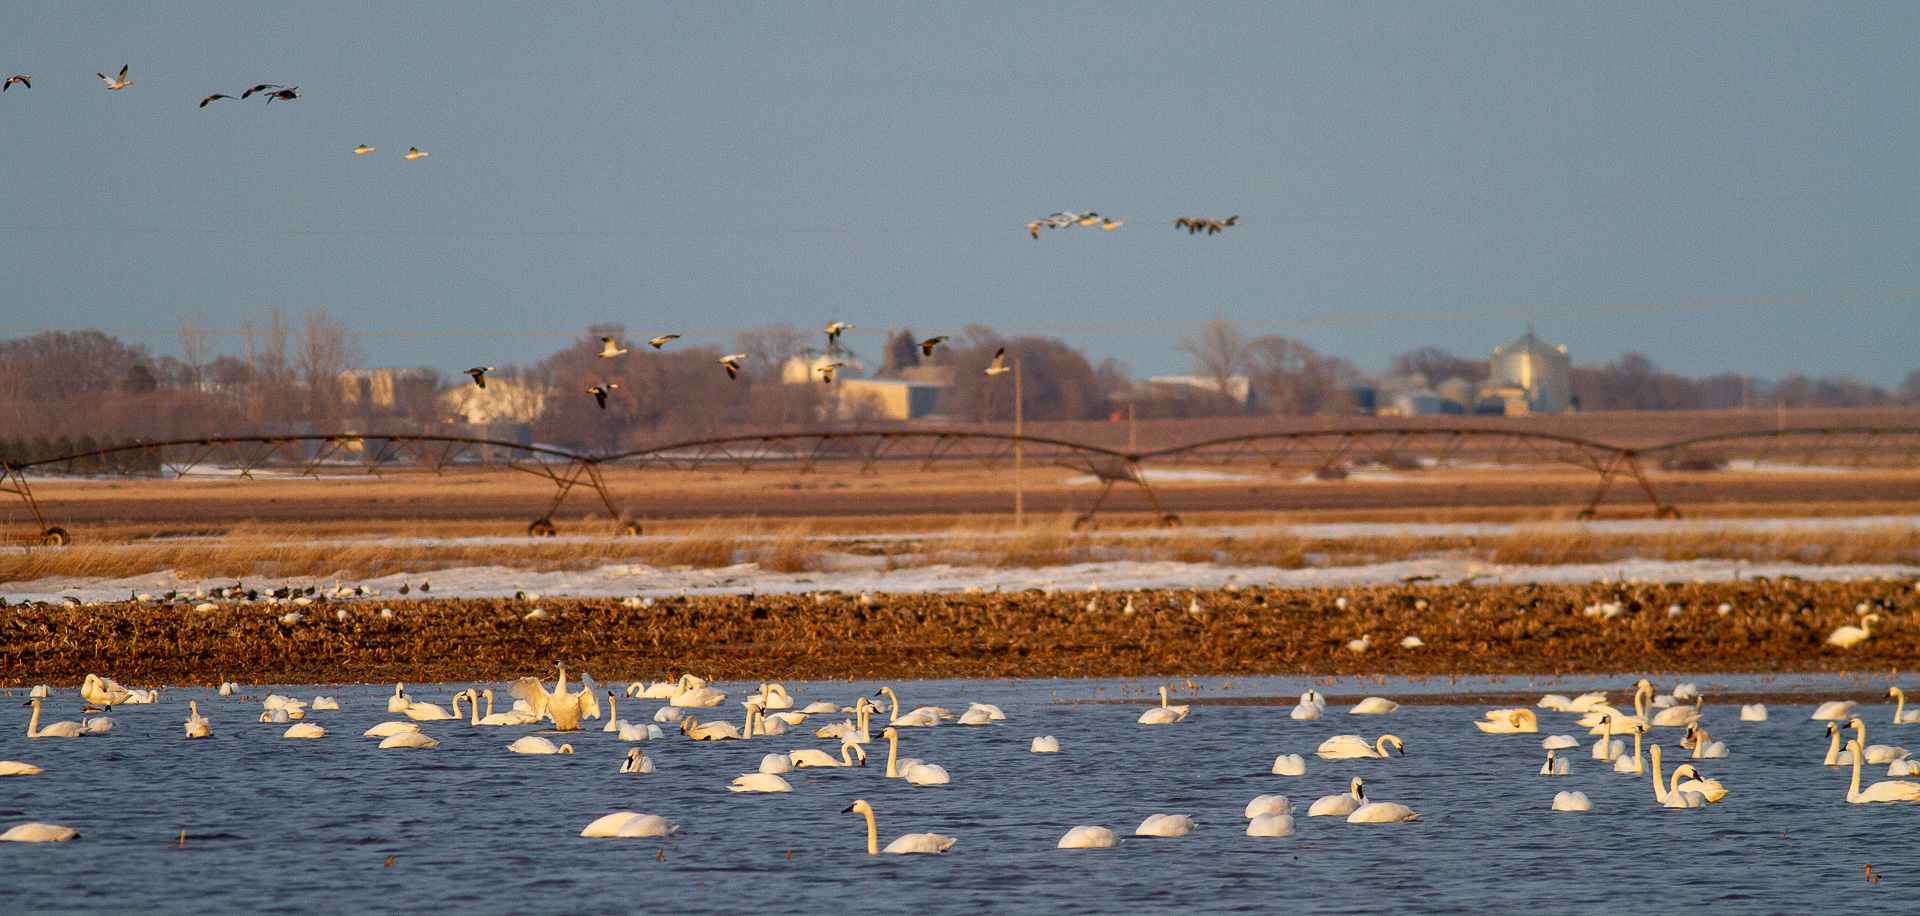 Tundra Swans in flooded field near Nashua MN IMG_3673